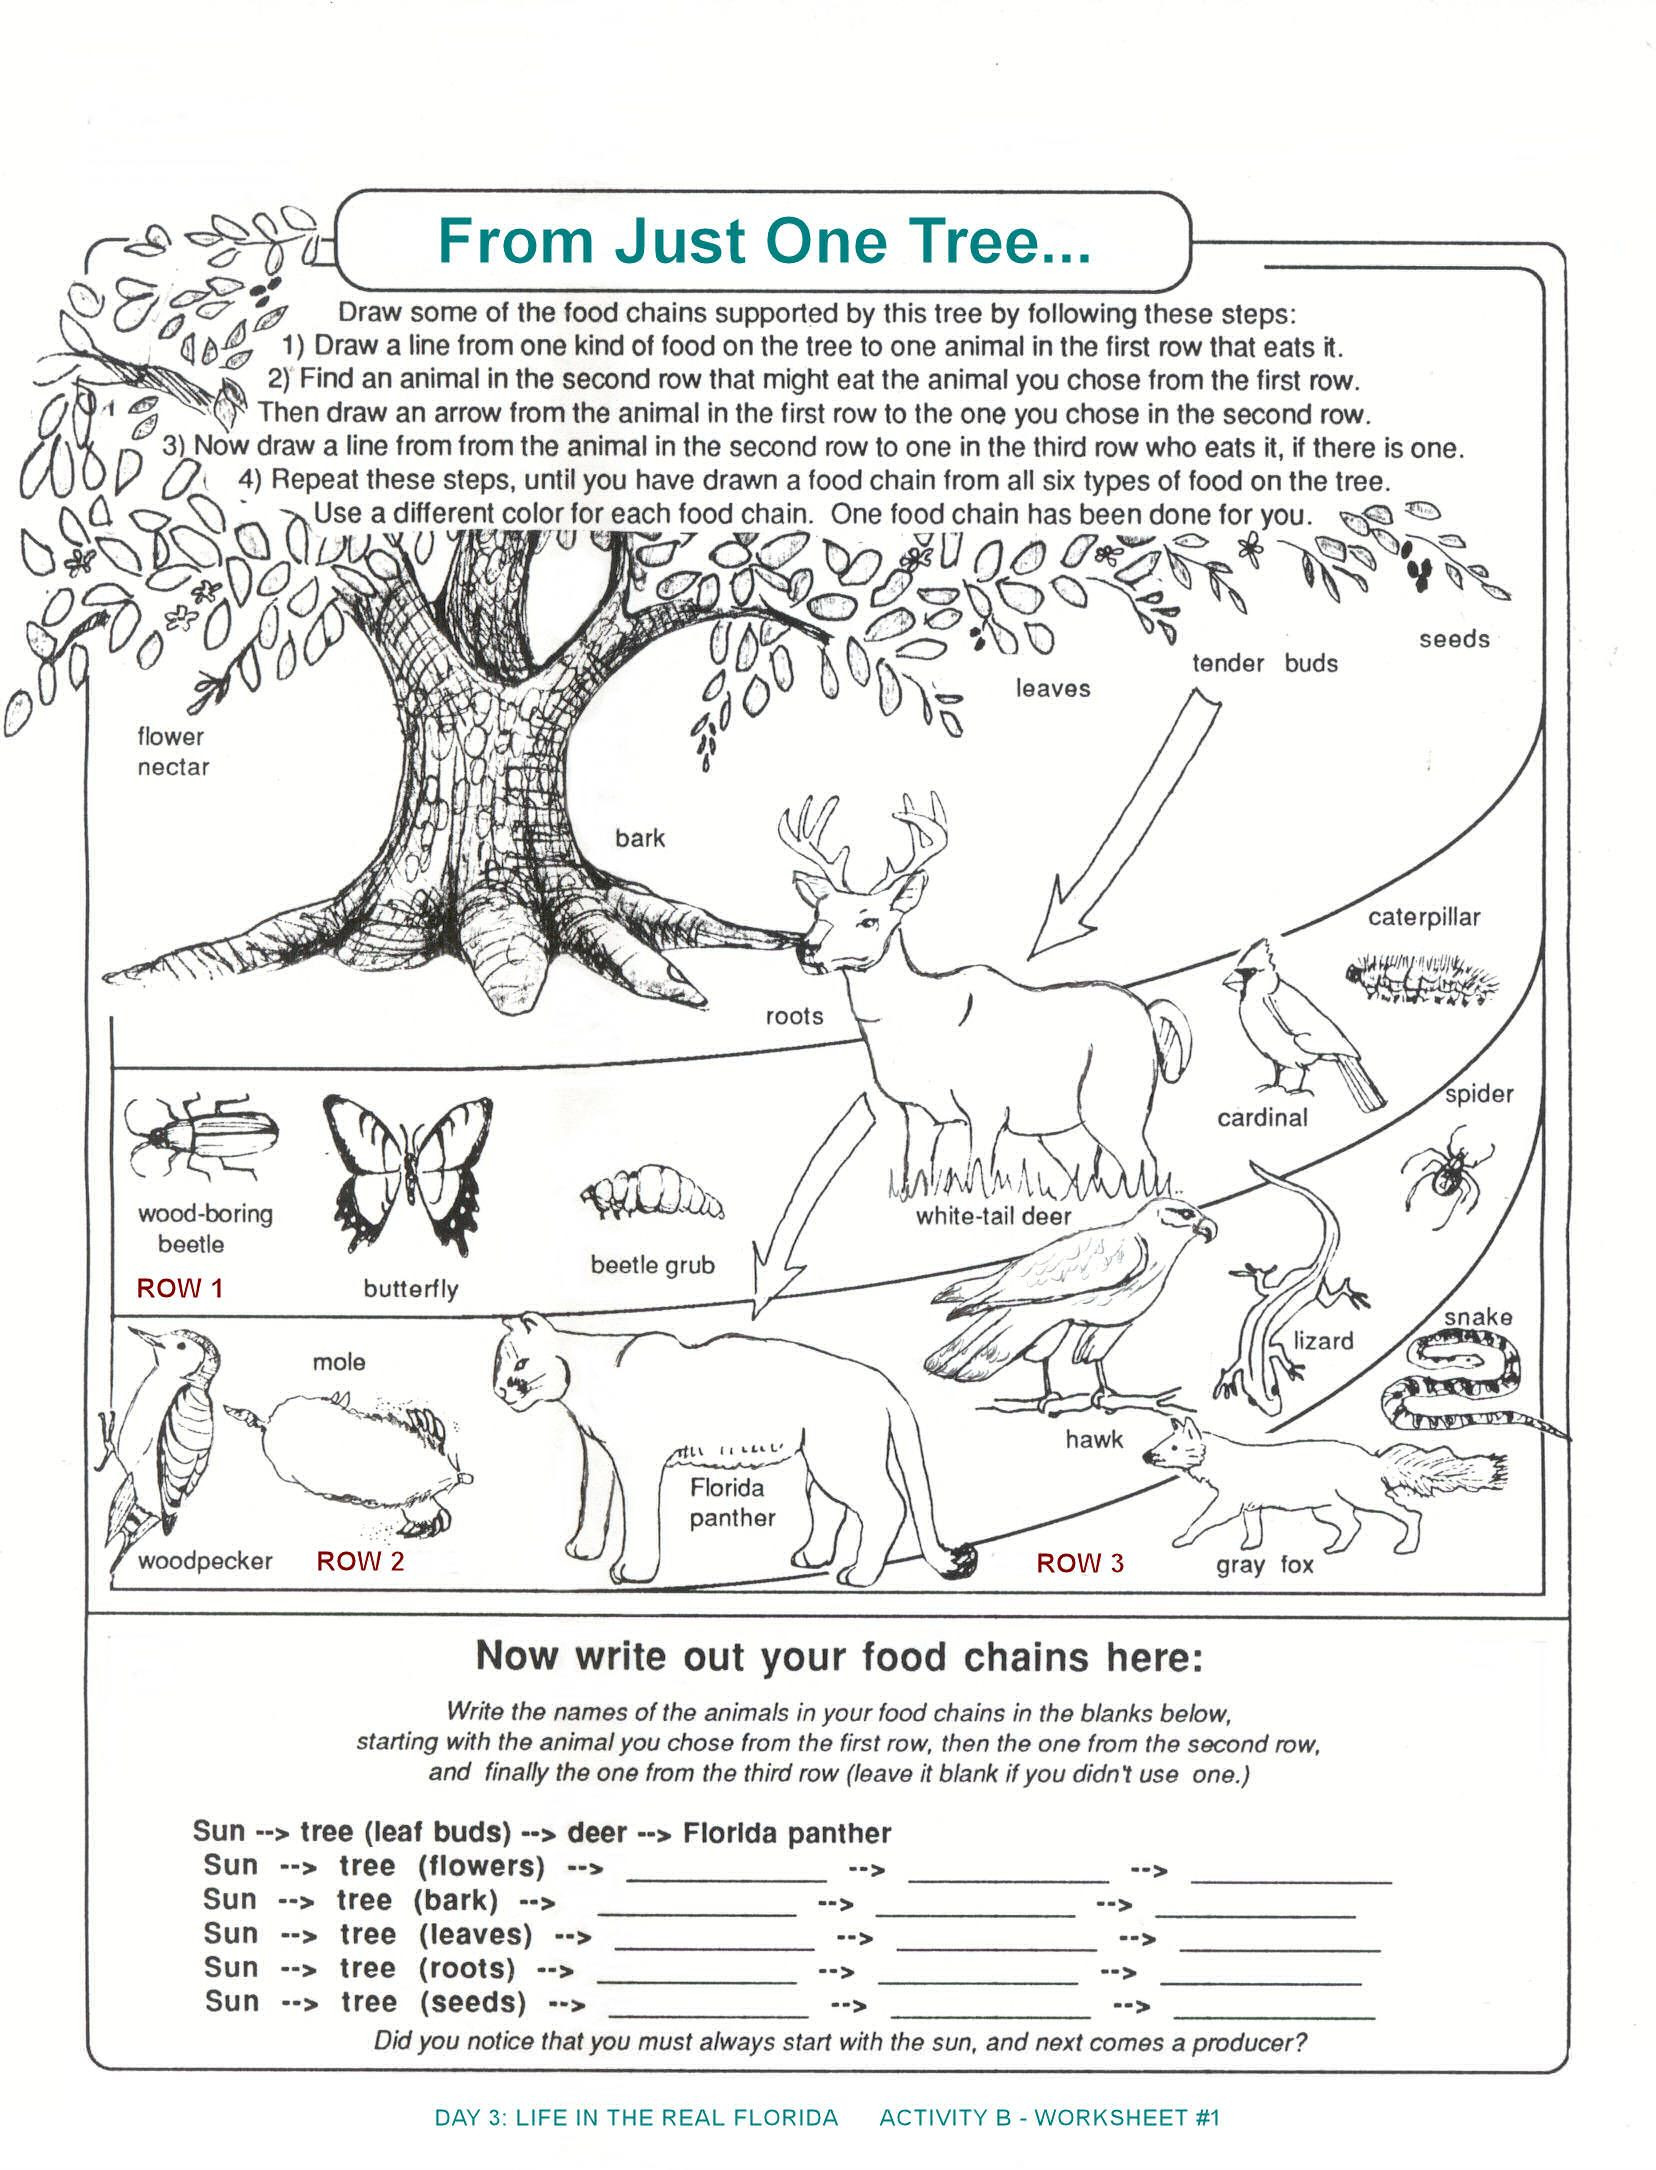 Free Printable Ecosystem Worksheets Archbold Biological Station